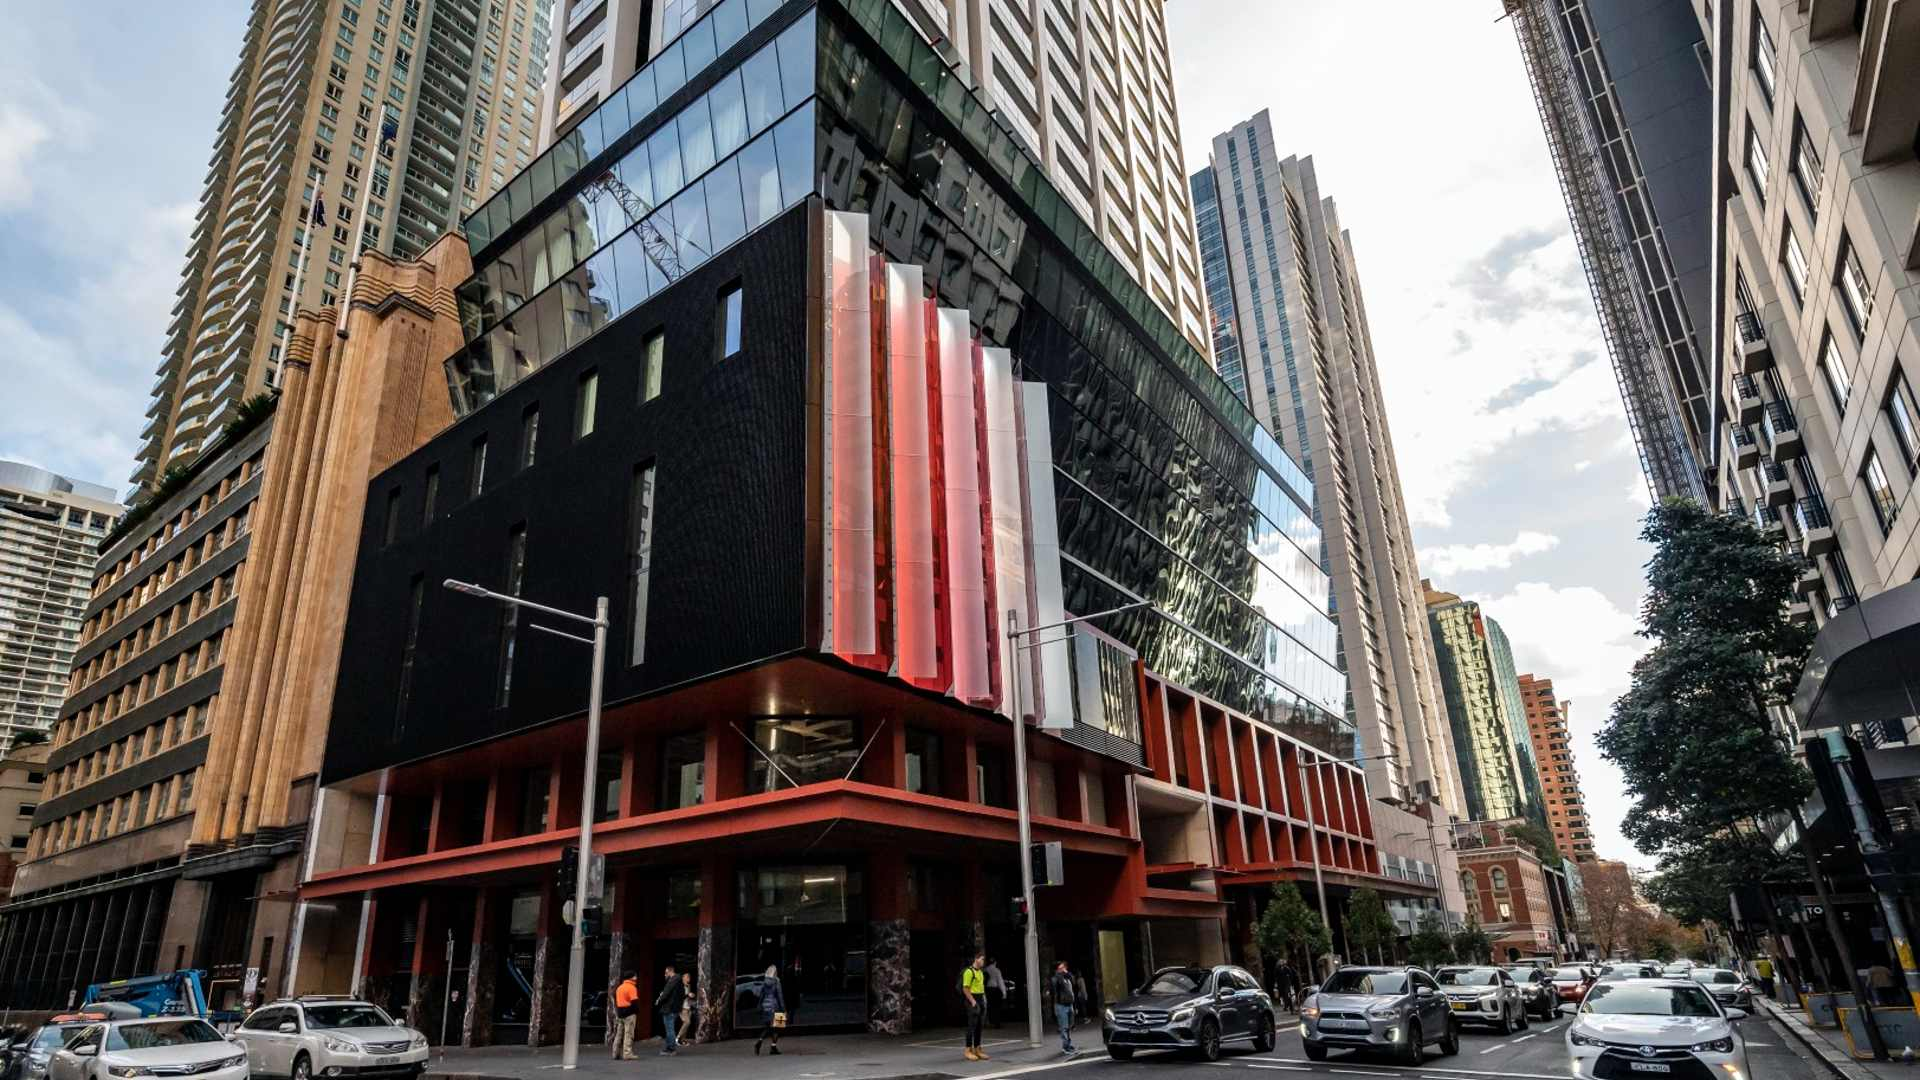 The City of Sydney and Brand X Are Launching a New State-of-the-Art Creative Studio in the CBD